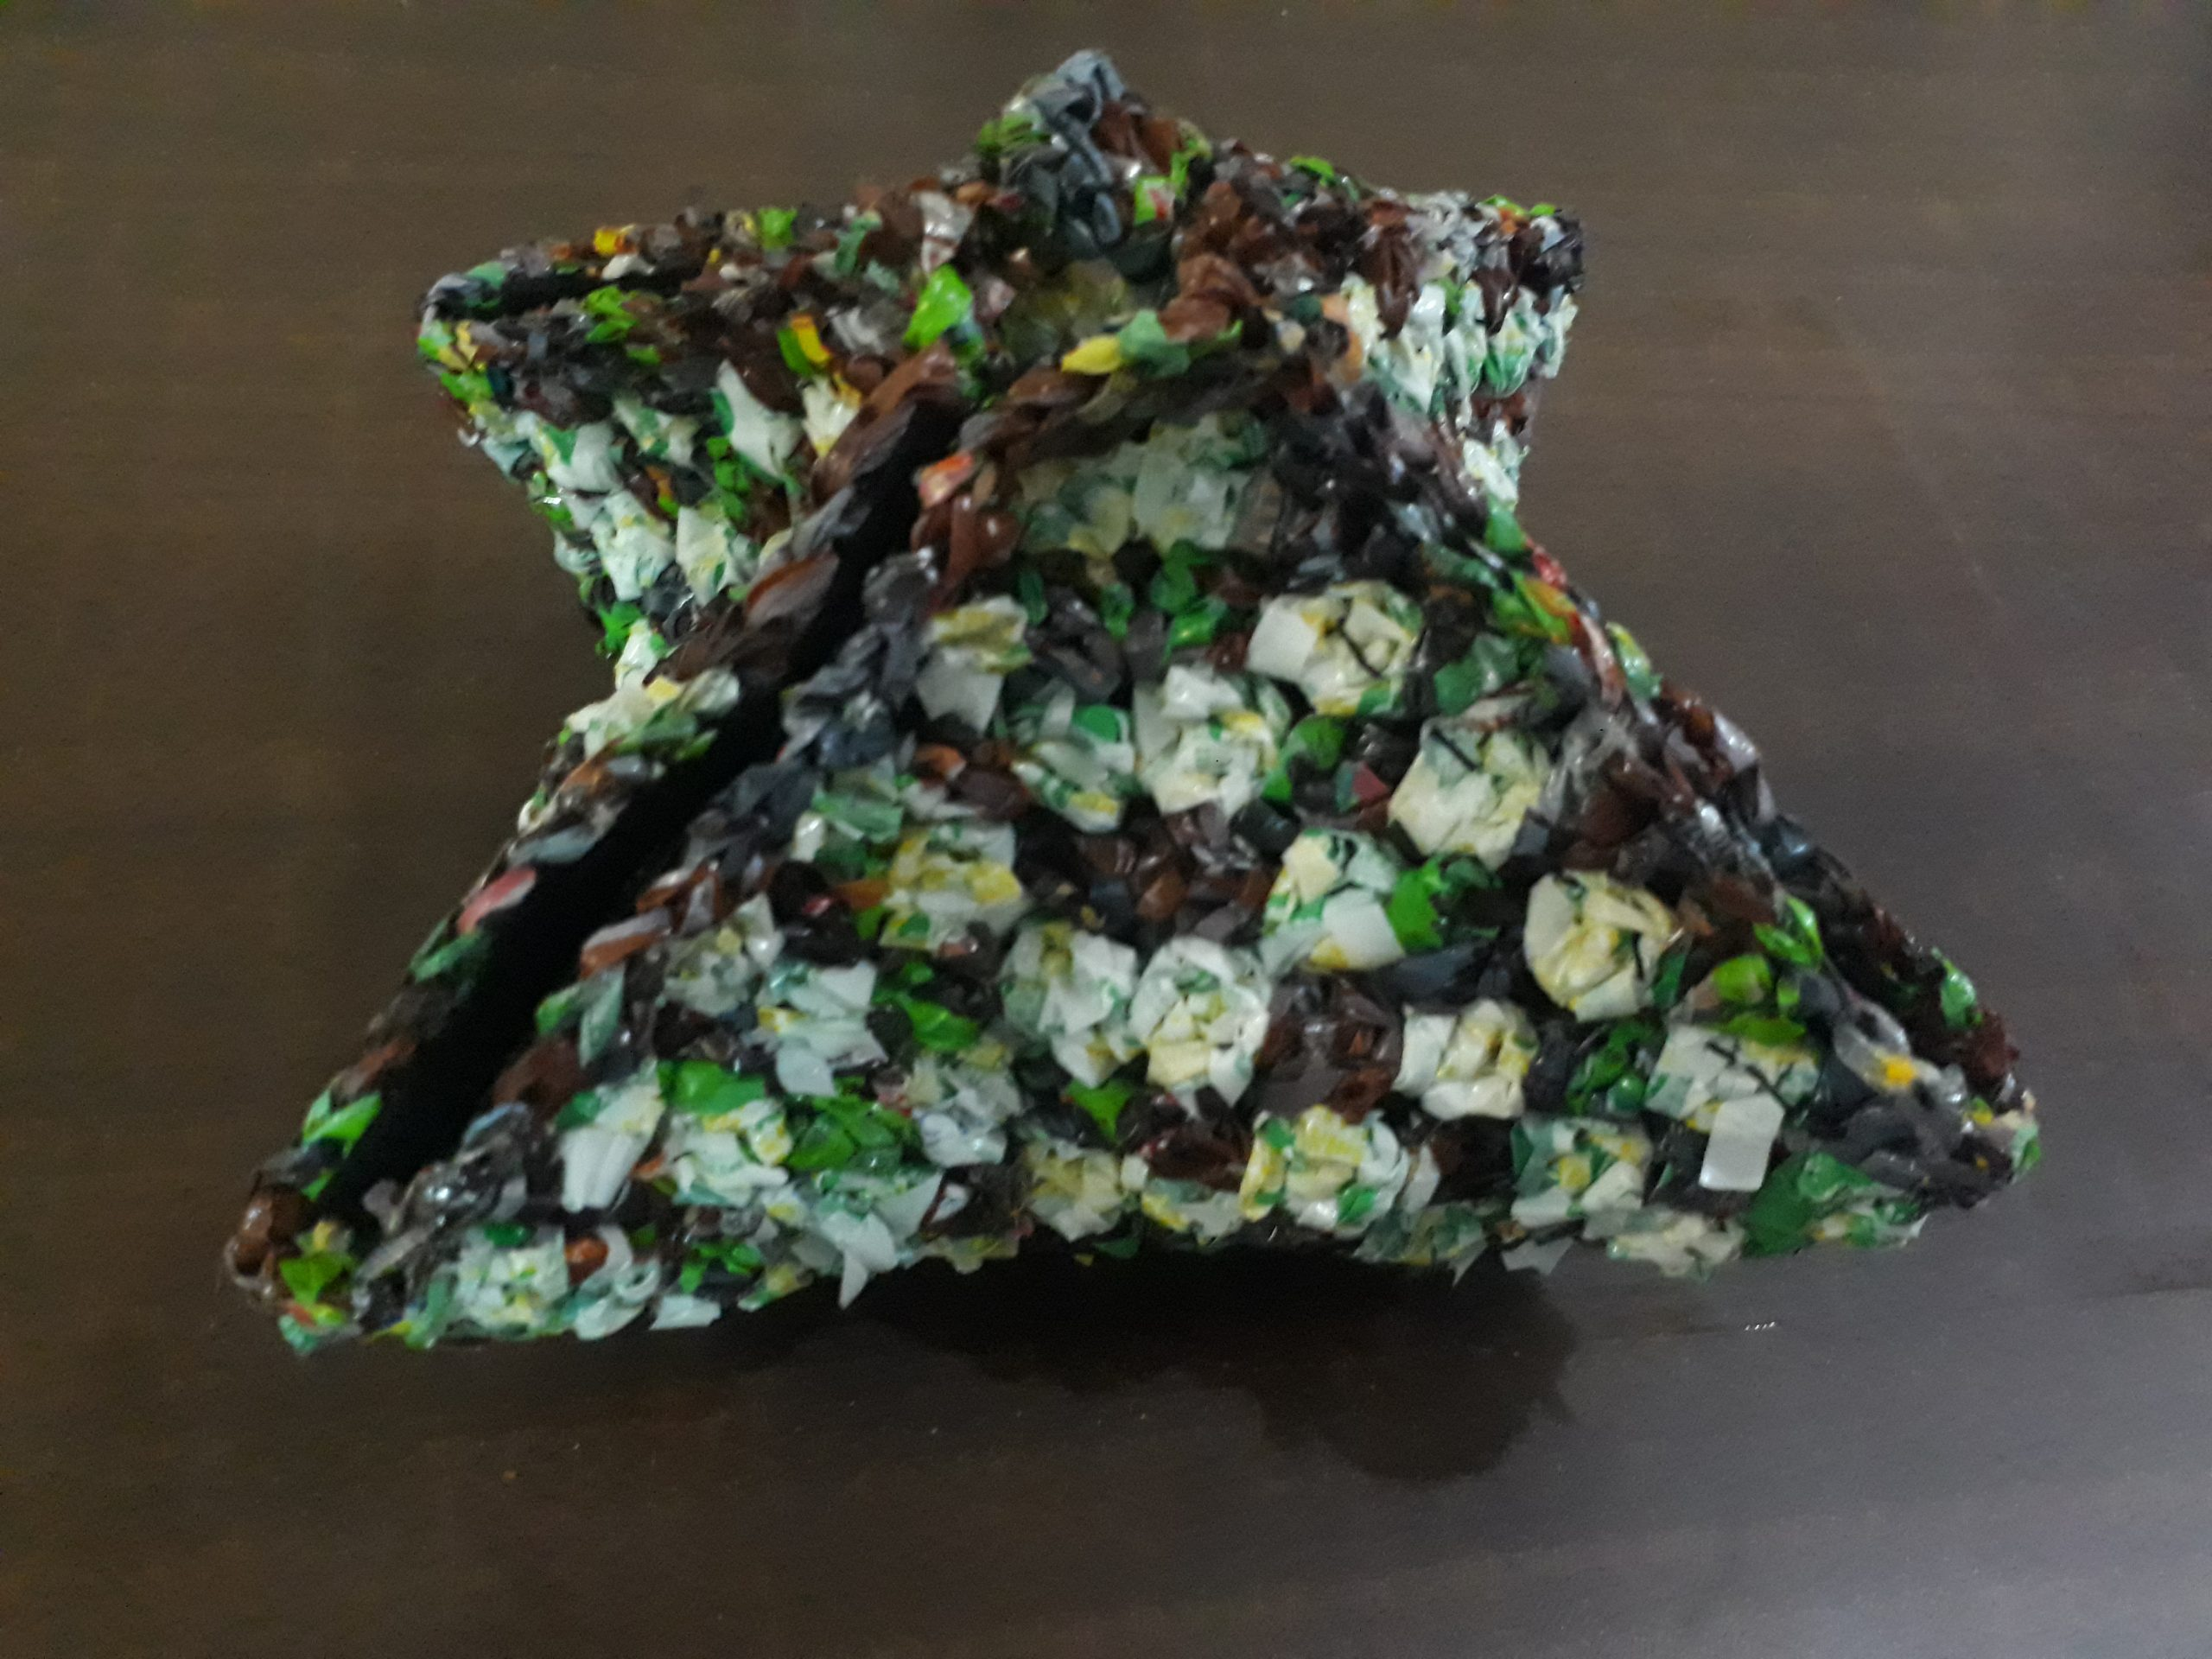 Upcycling Plastic for Public Good